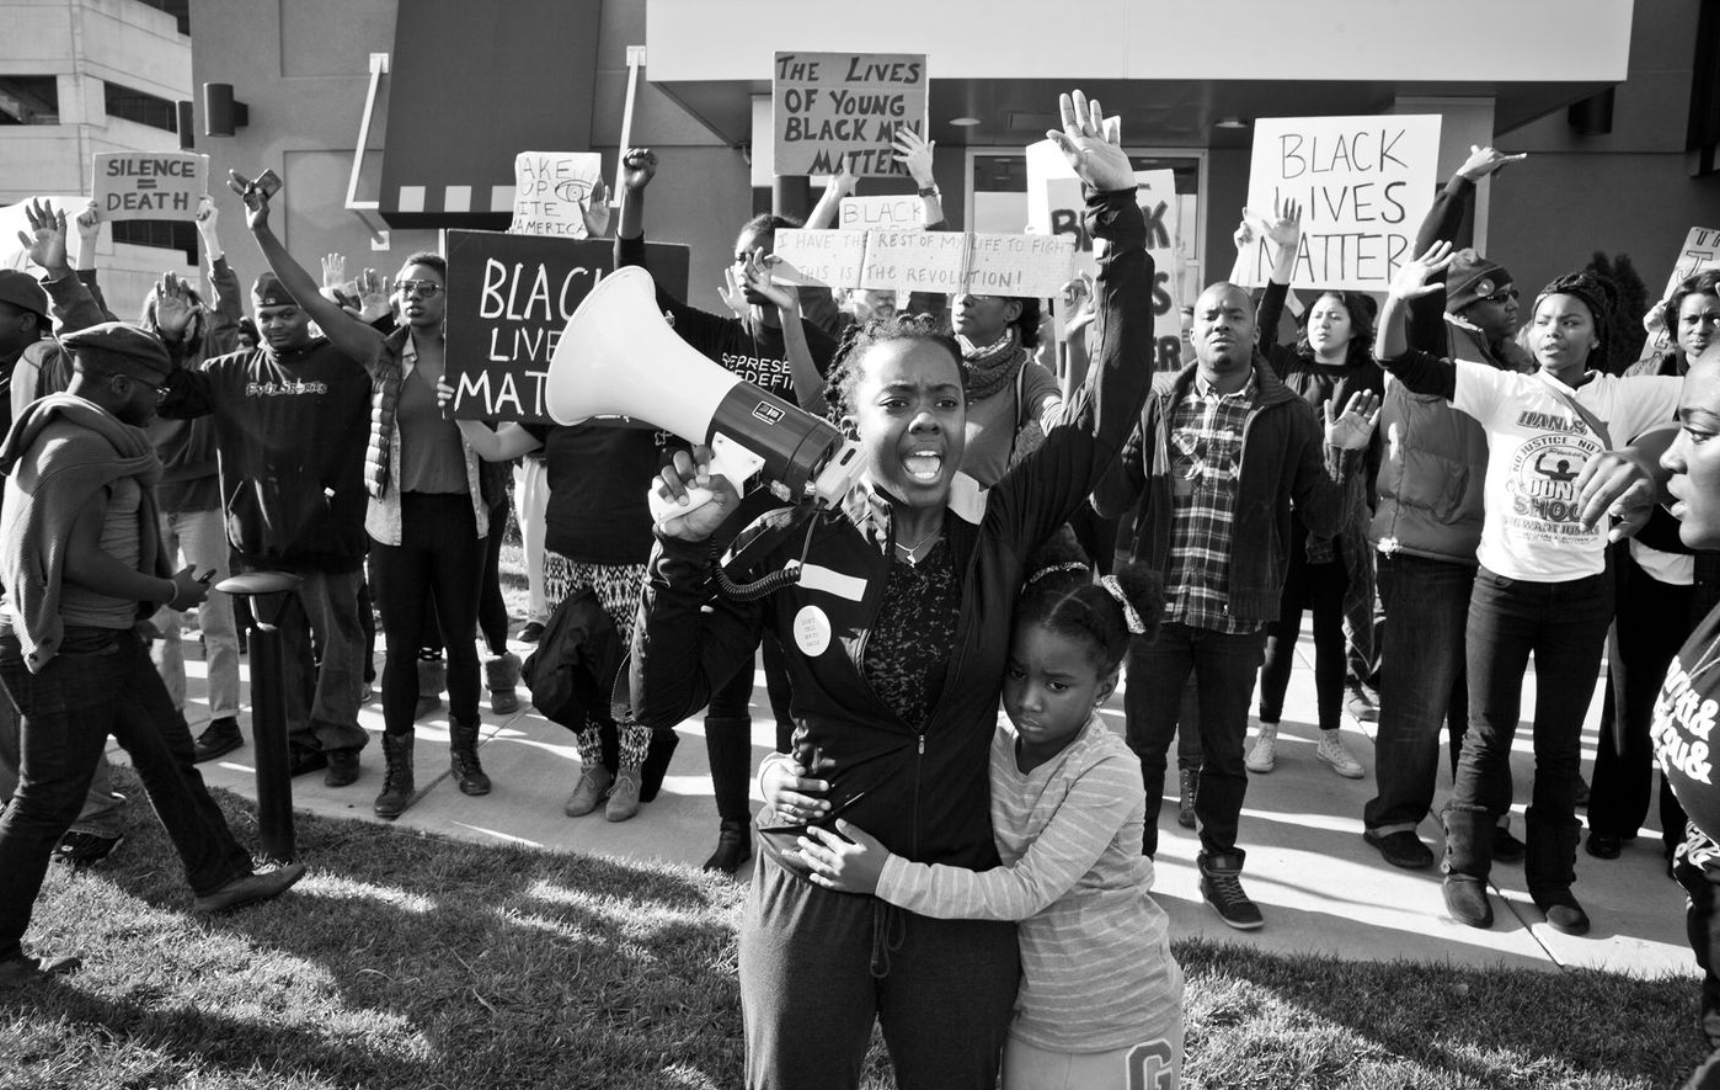 READ >> 12 Documentaries You Should Watch About Racism and Police Brutality in America